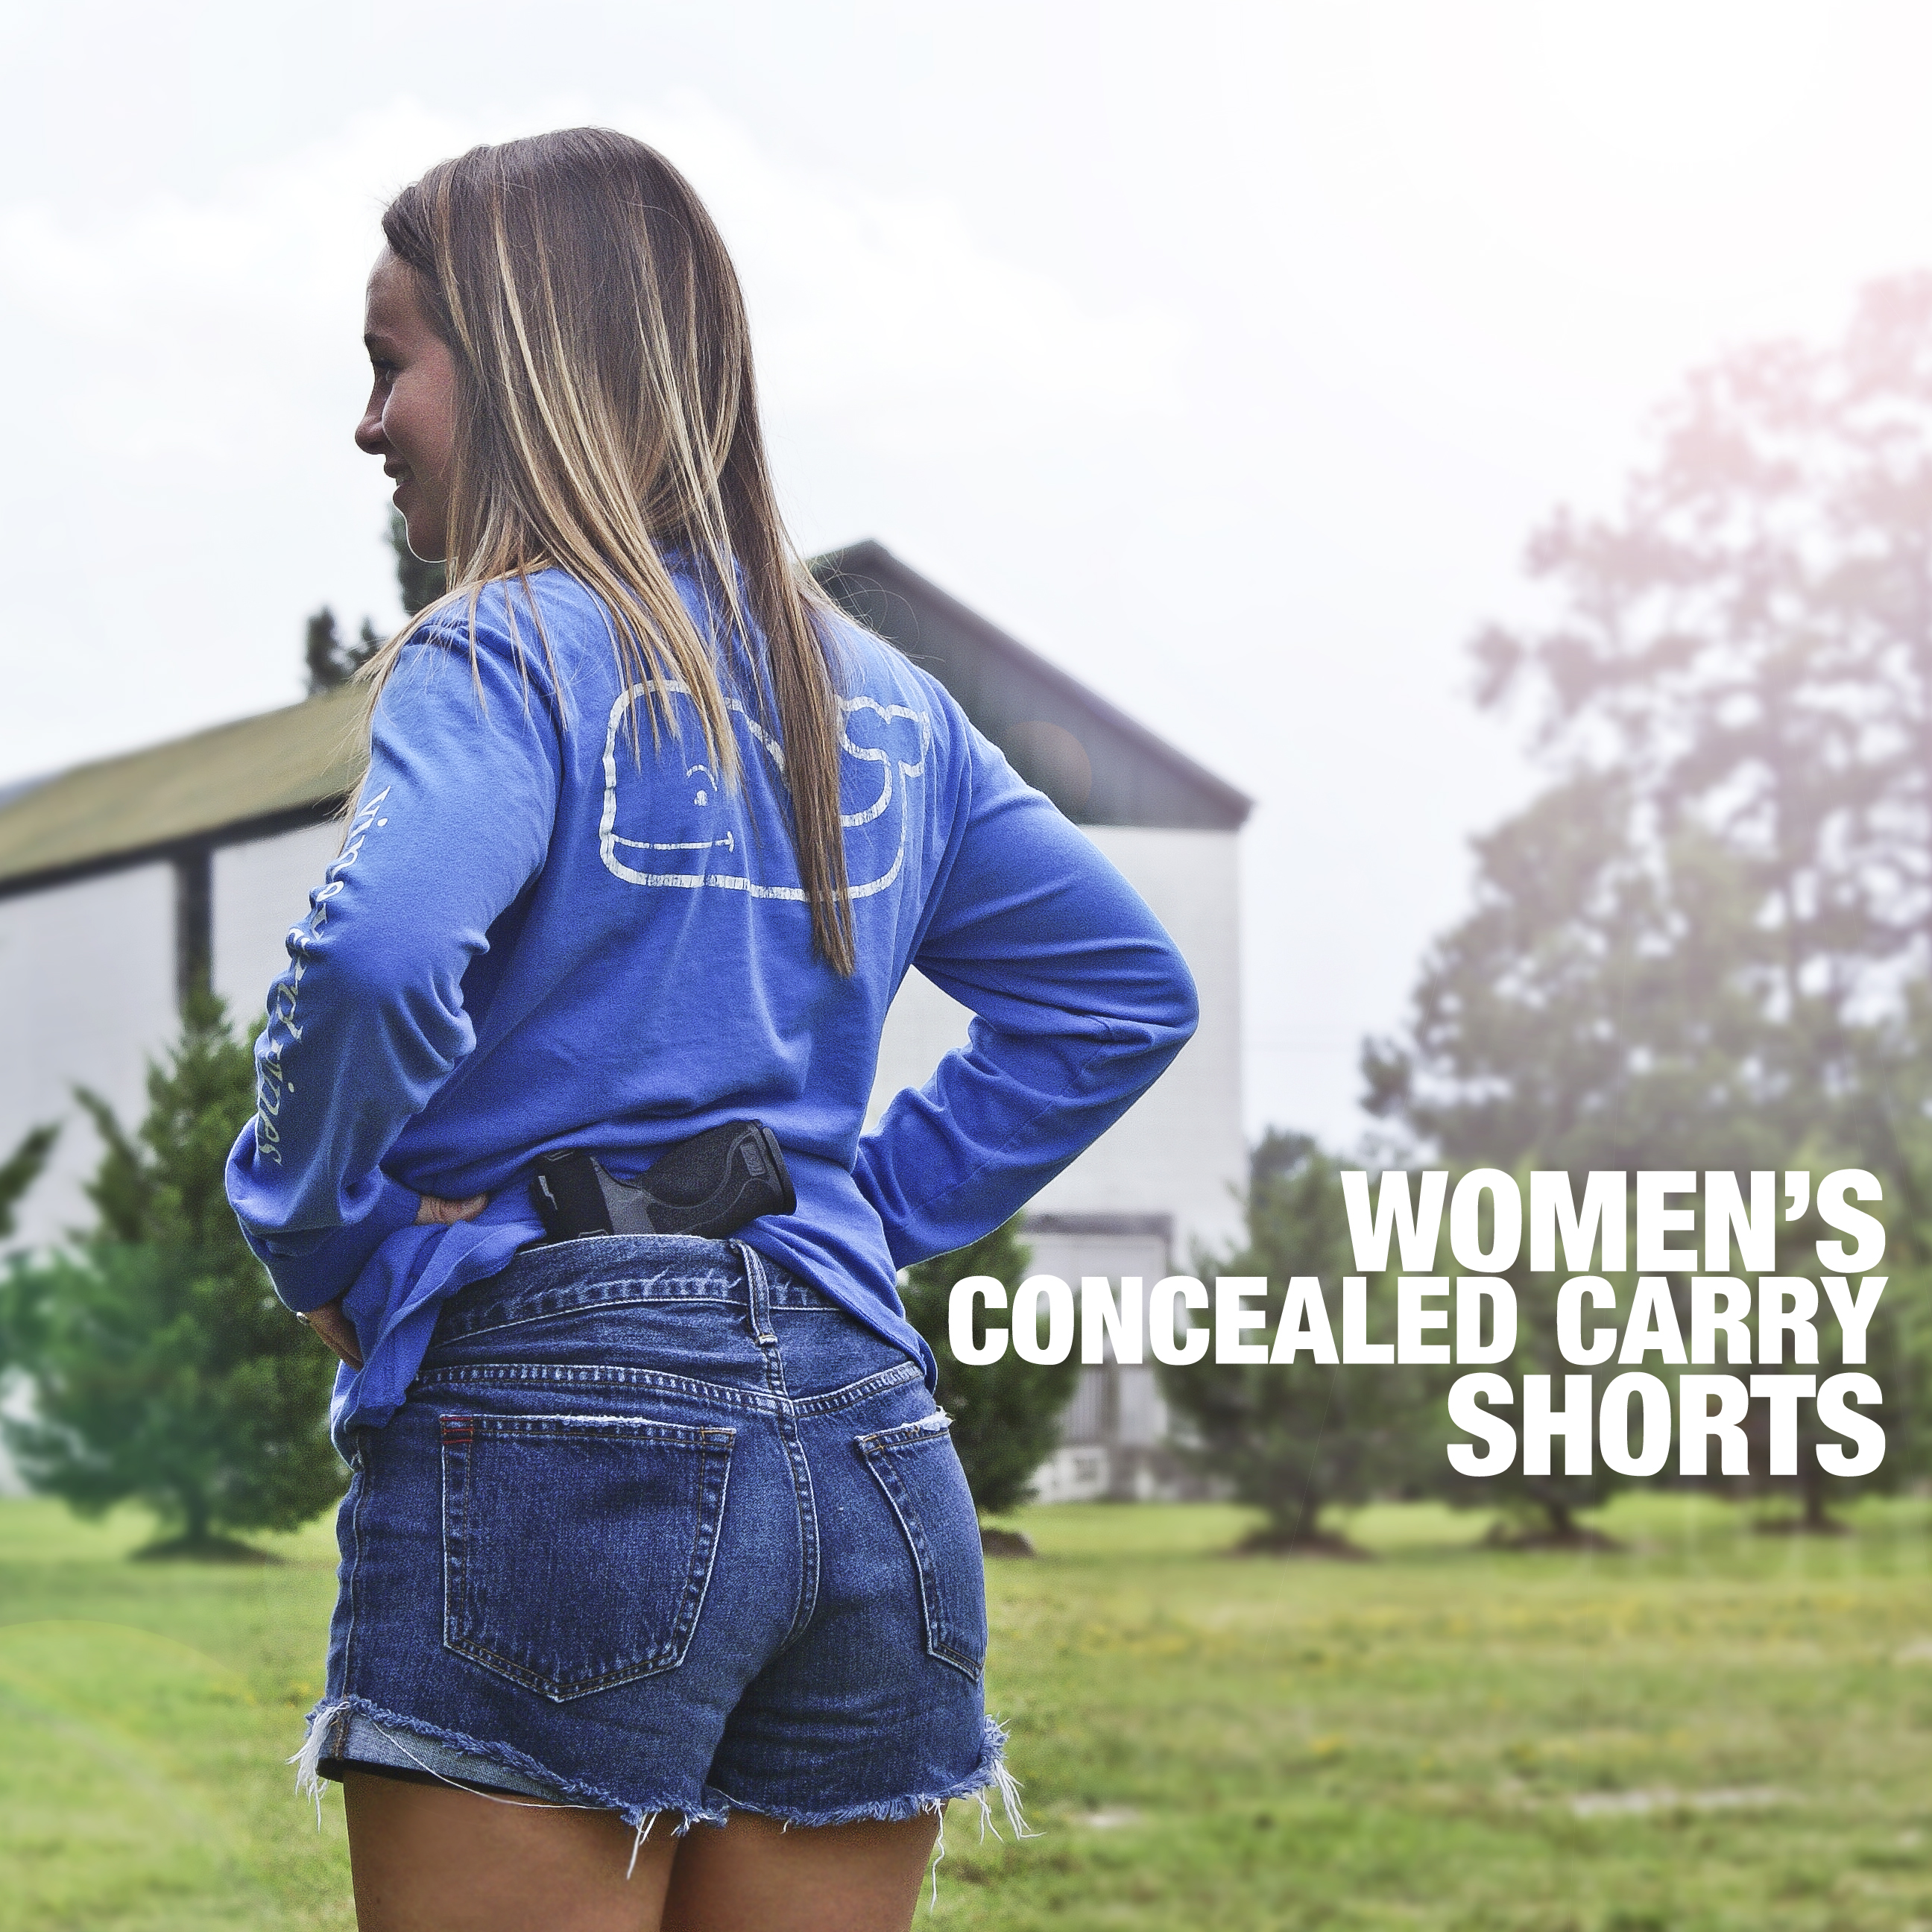 Women's Concealed Carry Shorts